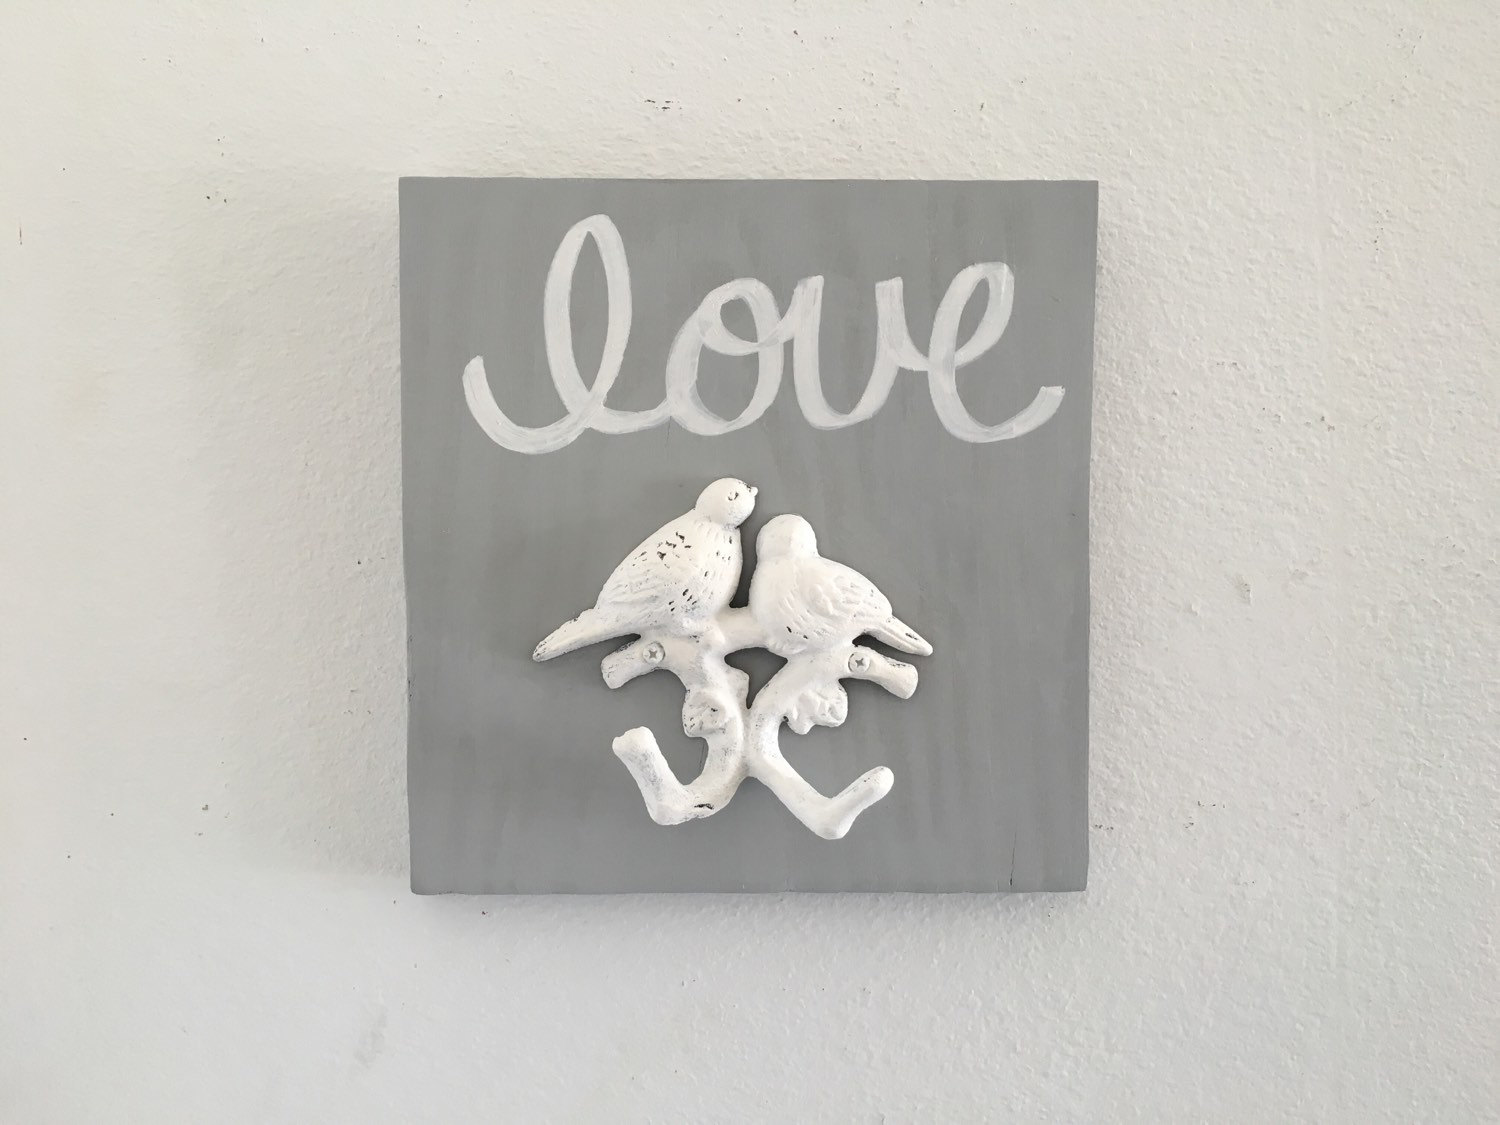 You can find this creative necklace holder also in other colors. This one is white and gray, made of cast iron, wood and love birds.